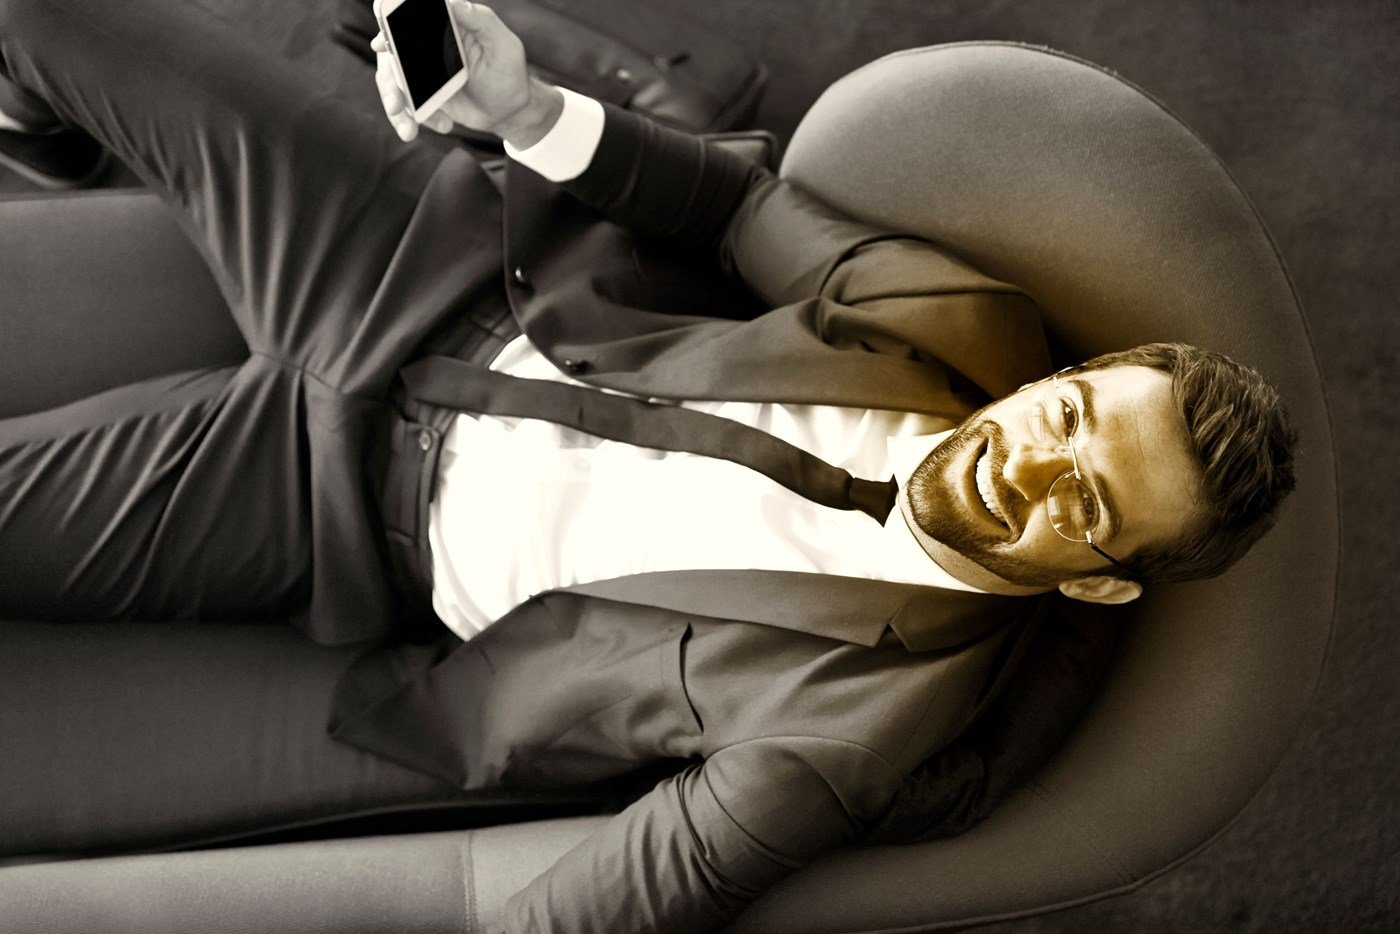 Male wearing eyeglasses sitting on sofa looking up at the camera with smartphone in right hand